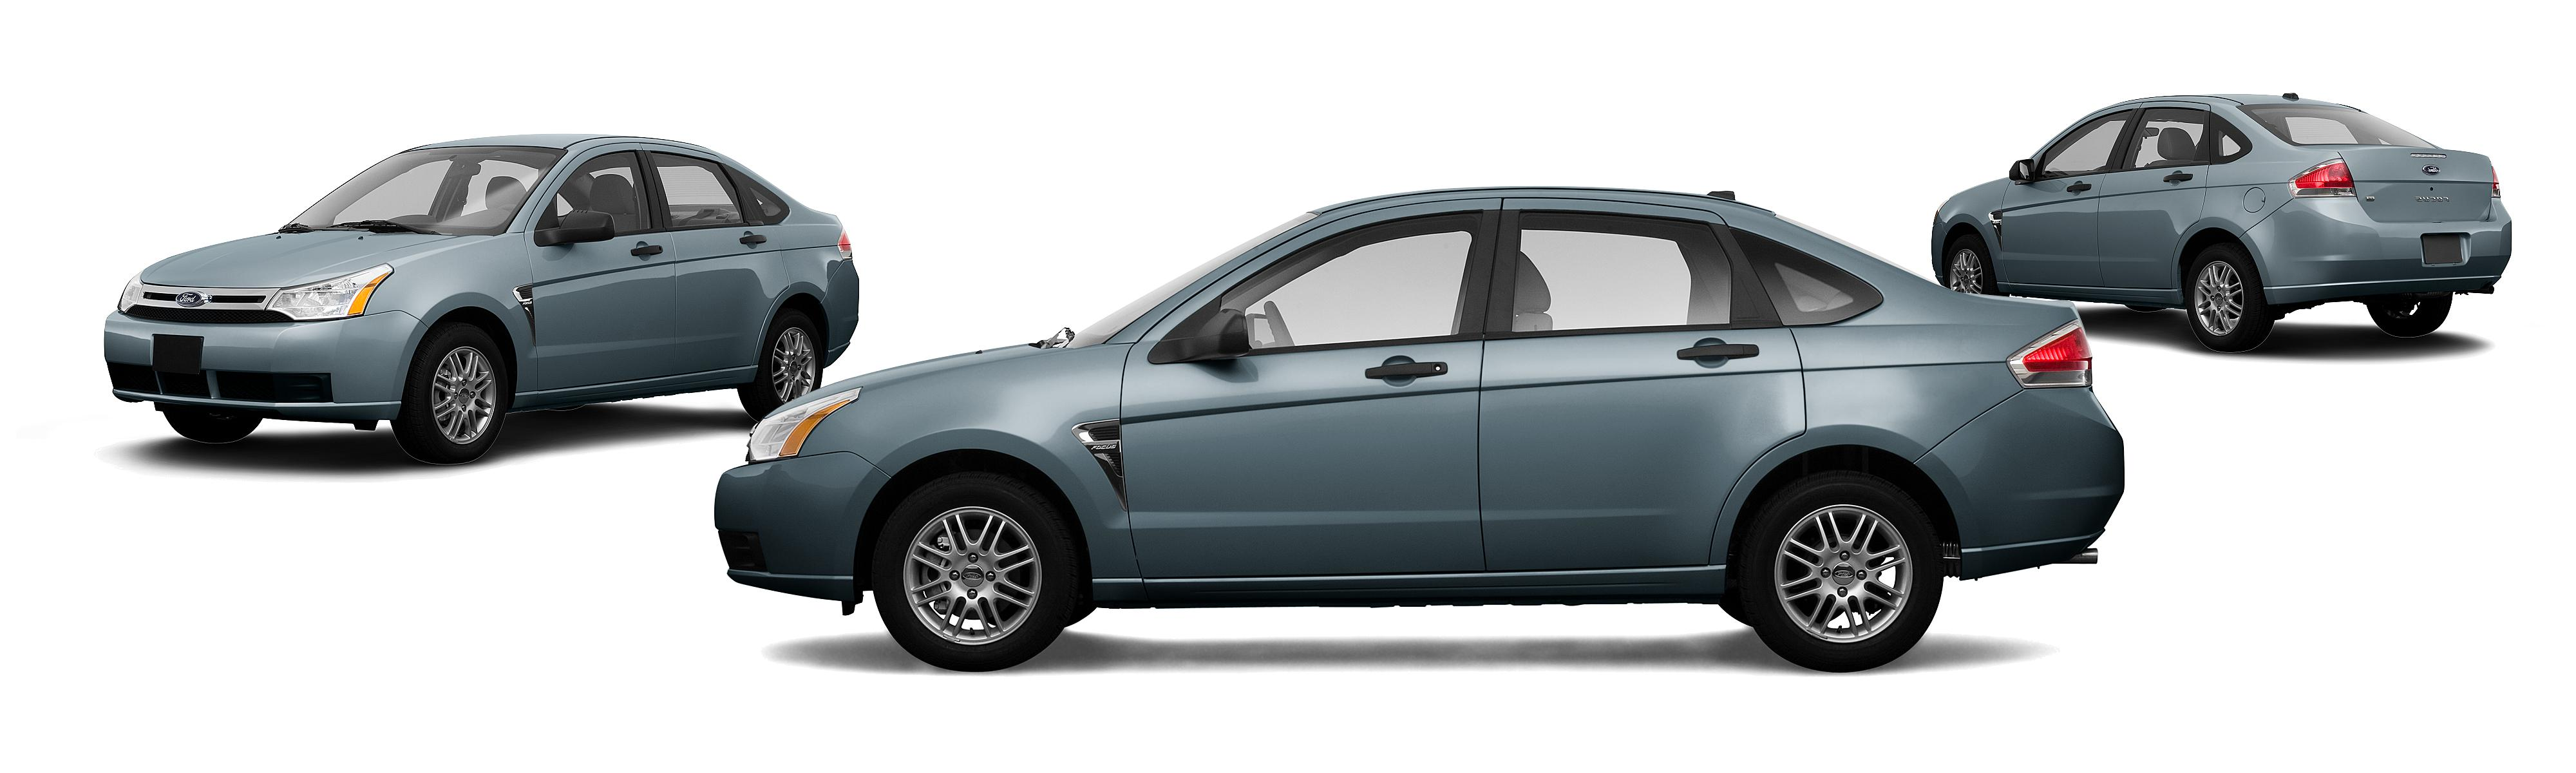 2008 ford focus se 4dr sedan research groovecar